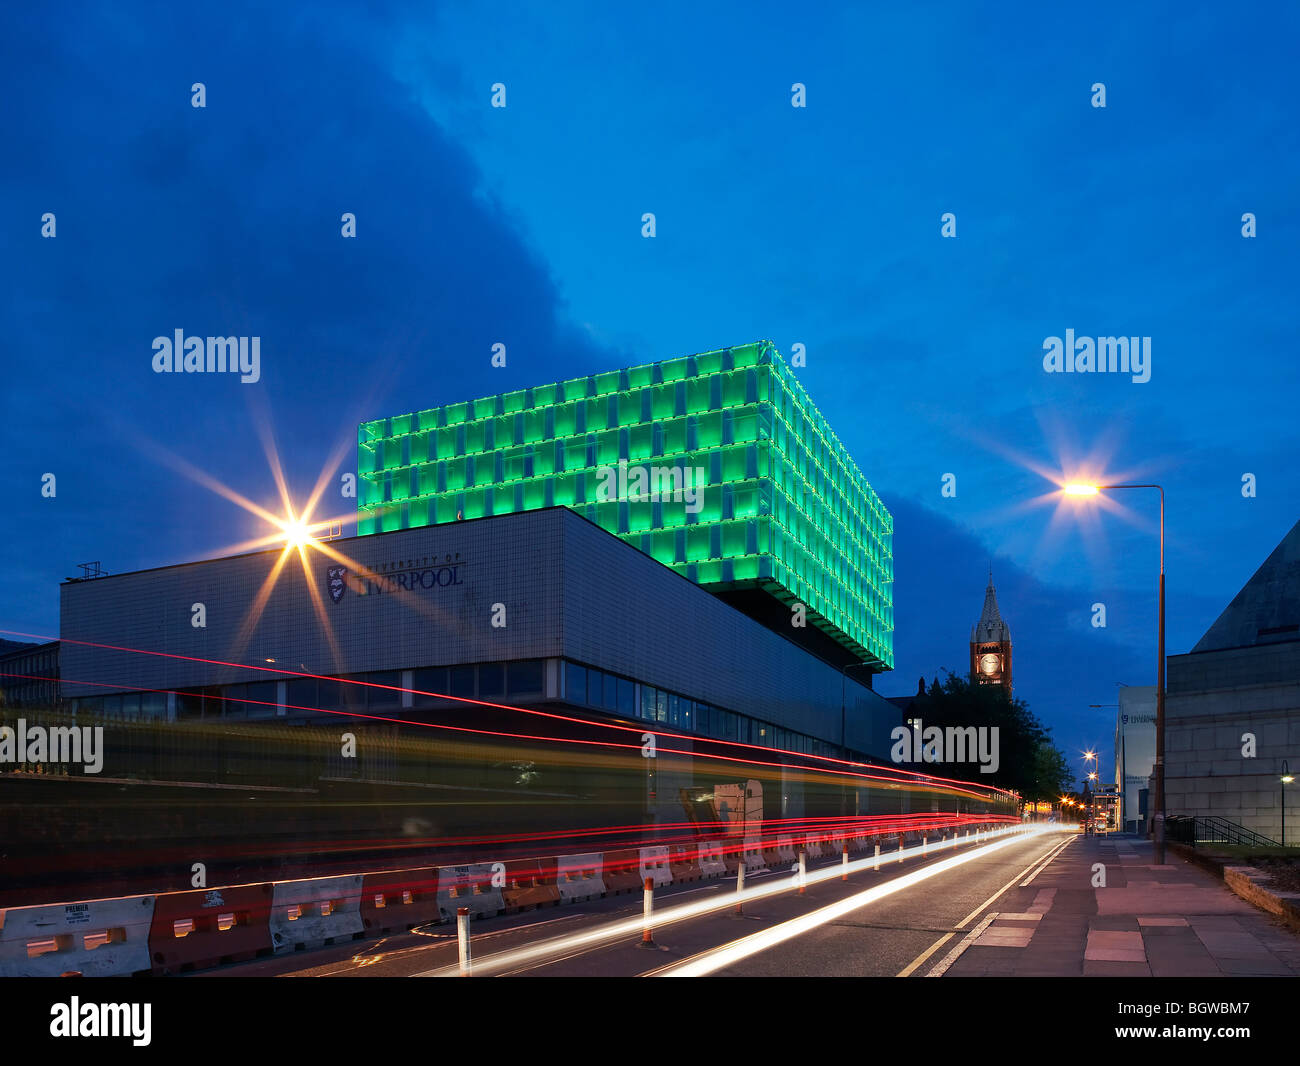 UNIVERSITY OF LIVERPOOL FACULTY OF ENGINEERING, LIVERPOOL, UNITED KINGDOM, SHEPPARD ROBSON - Stock Image